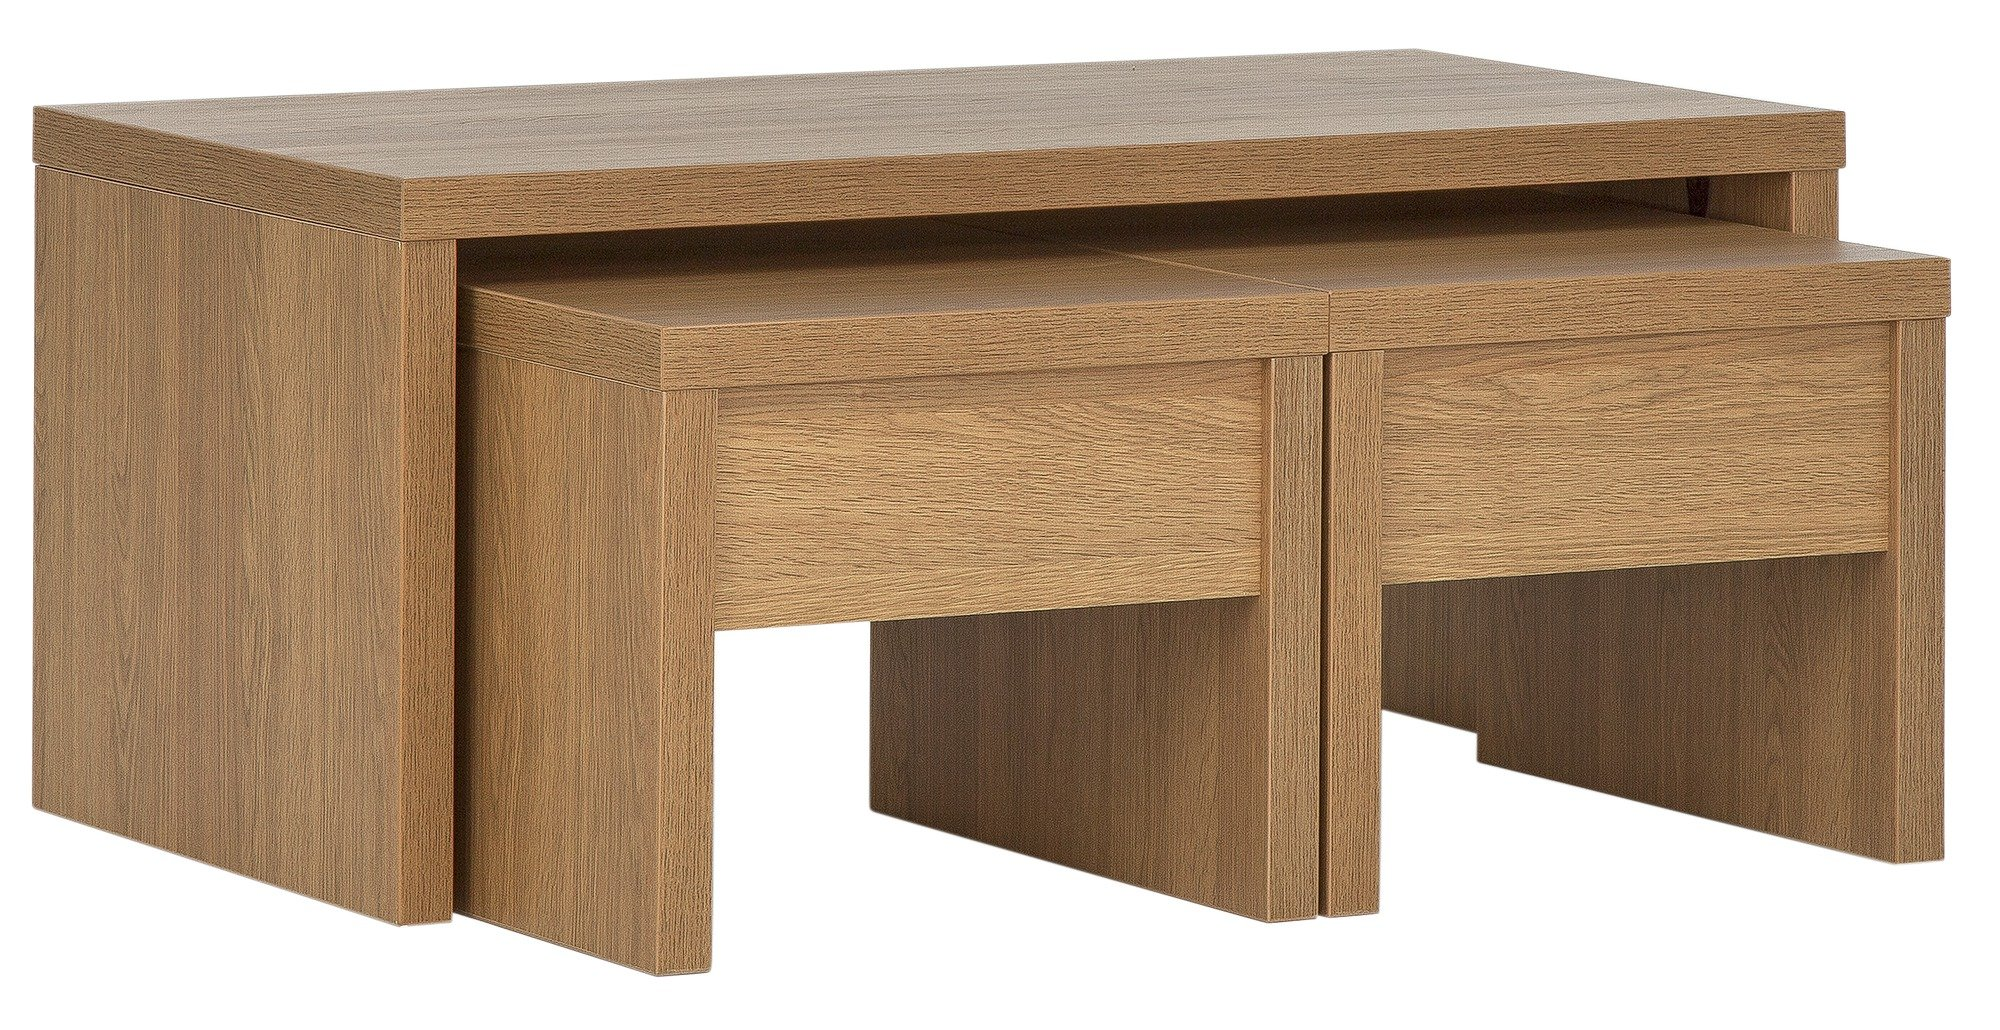 Image of Collection - Coffee Table with Nest of 2 Tables